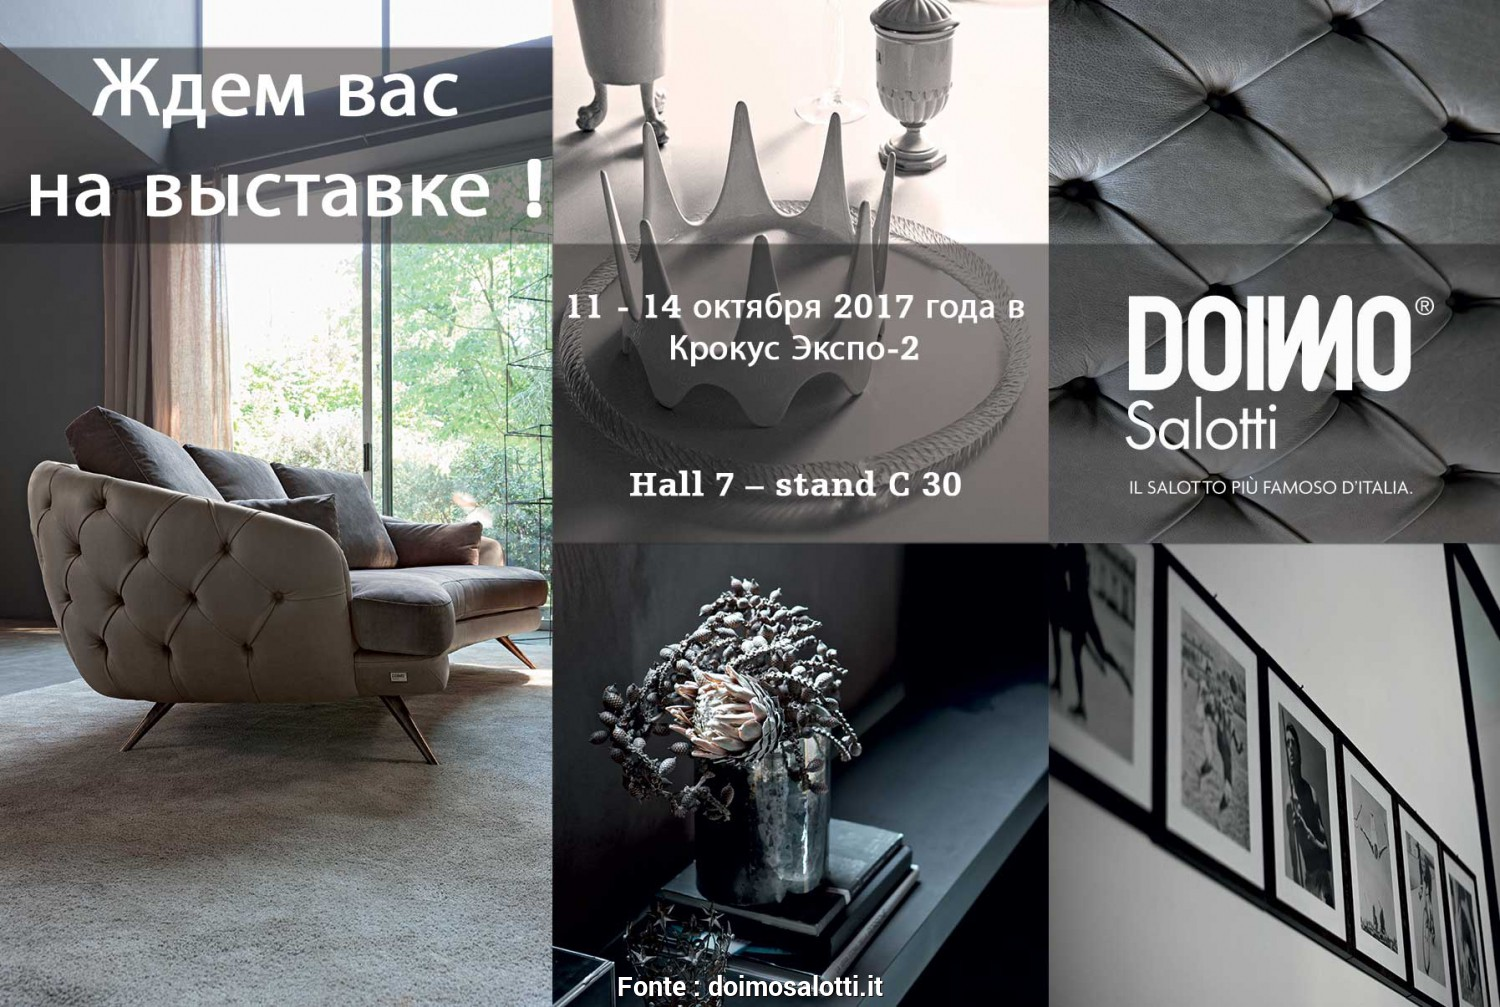 Misure Divano Russi, Bellissimo Doimo Salotti Will Attend At Crocus Expo 2, Moscow 11-14 October 2017. Hall 7, Stand C 30